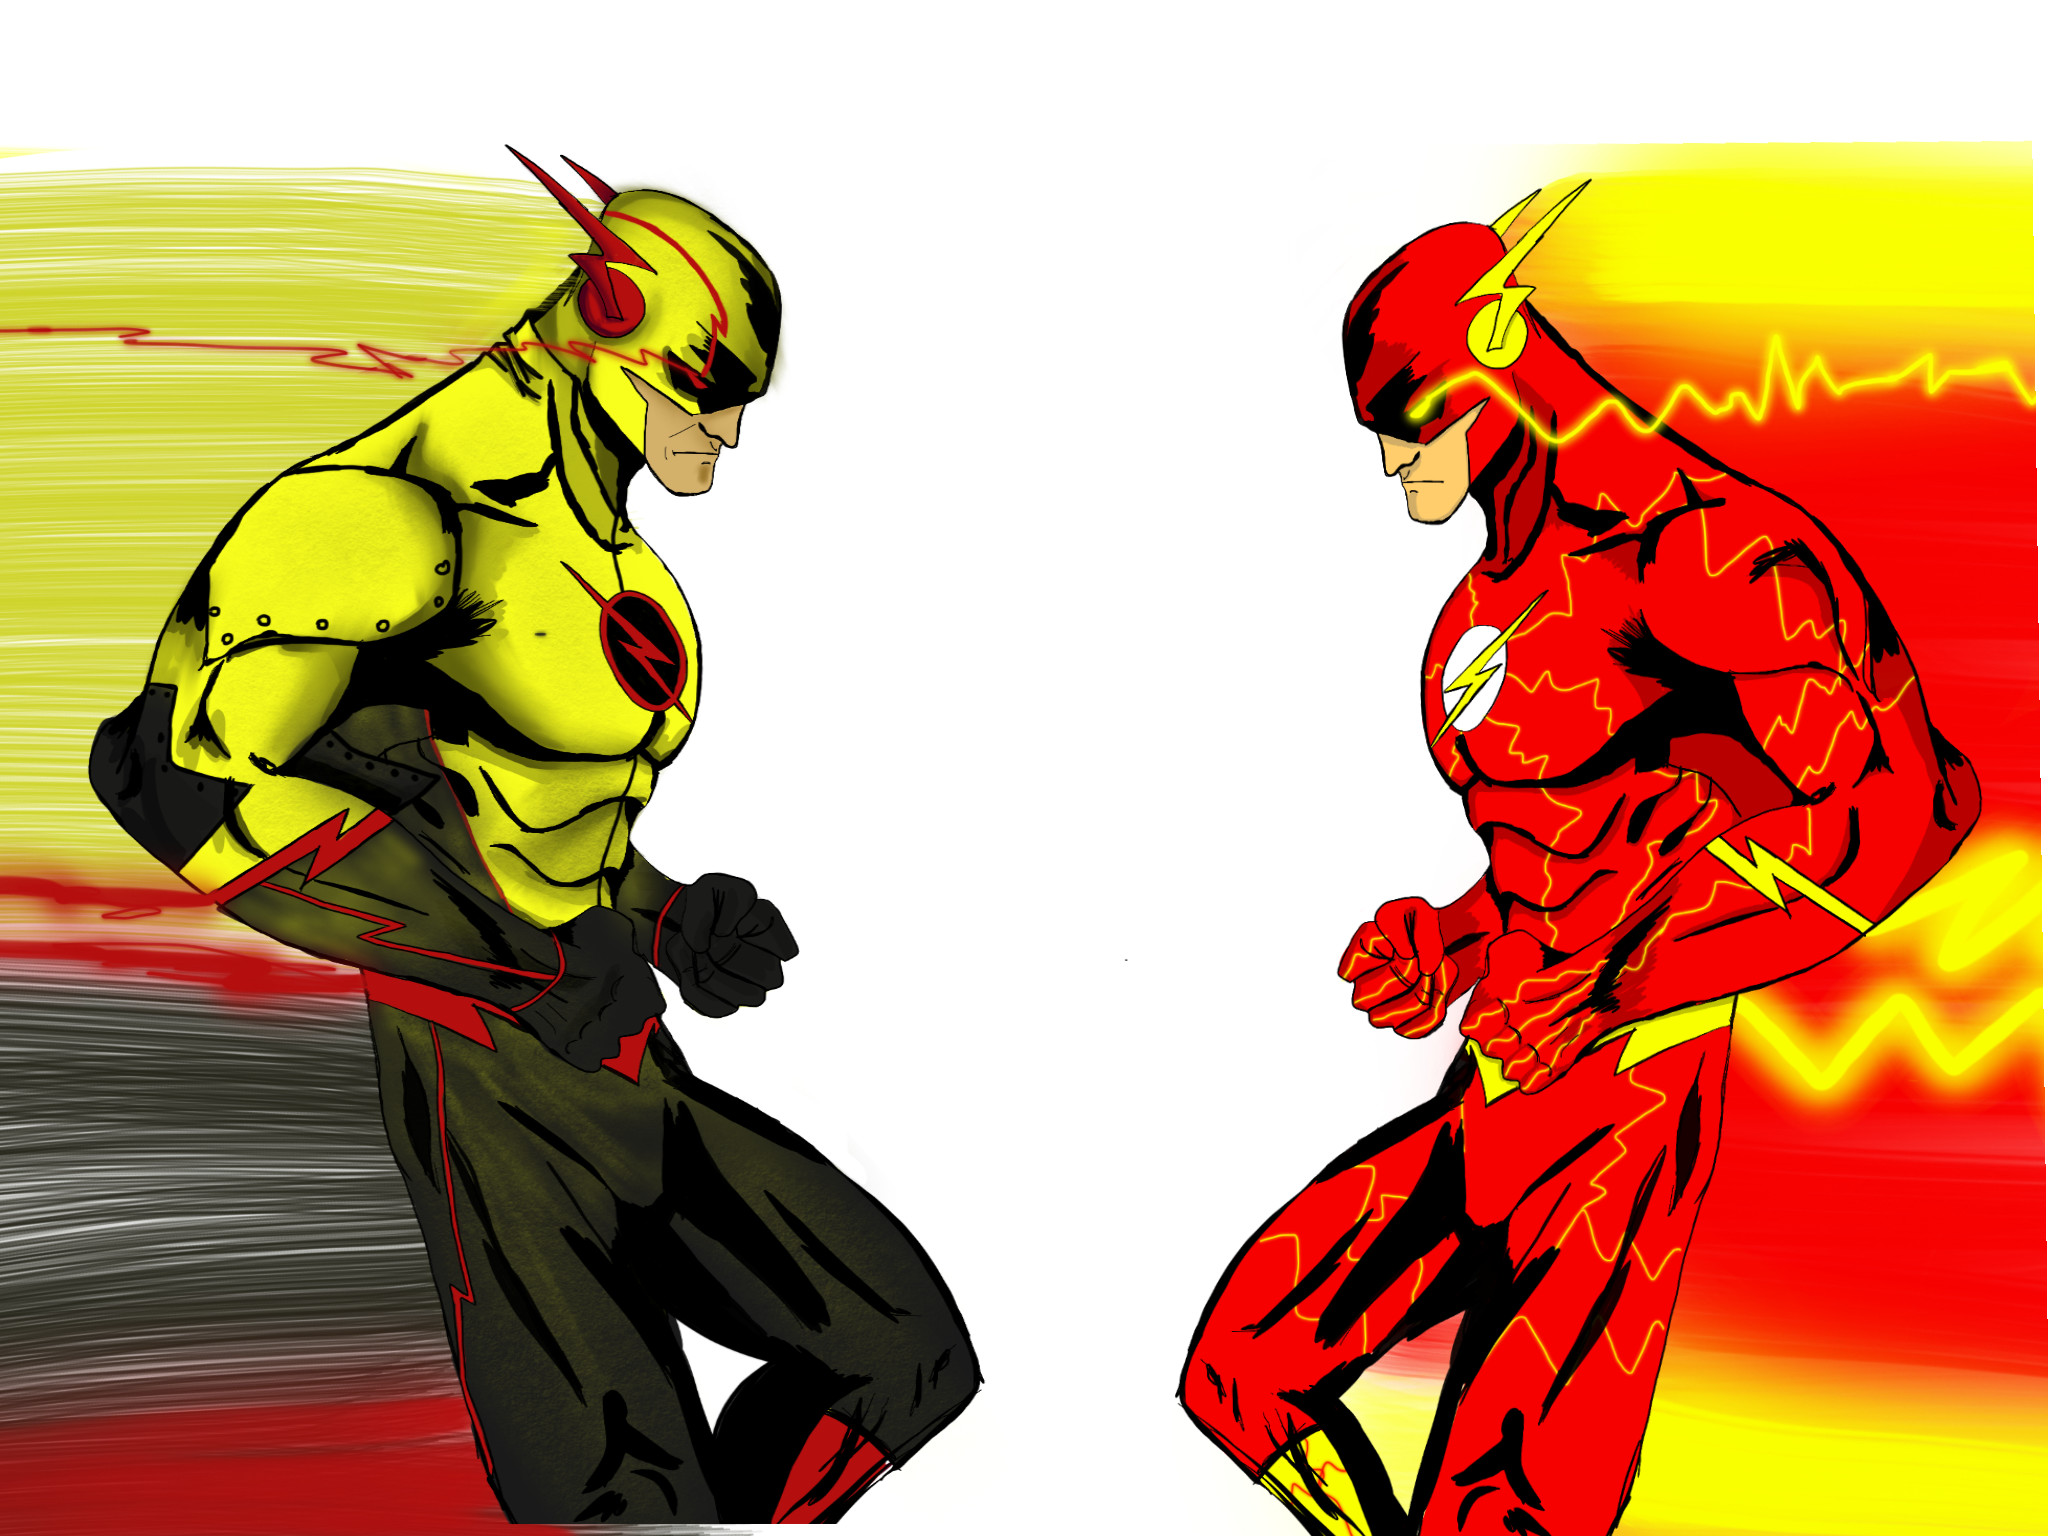 2560x1440 Injustice 2 Is That Wally West As Kid Flash In The Second Story